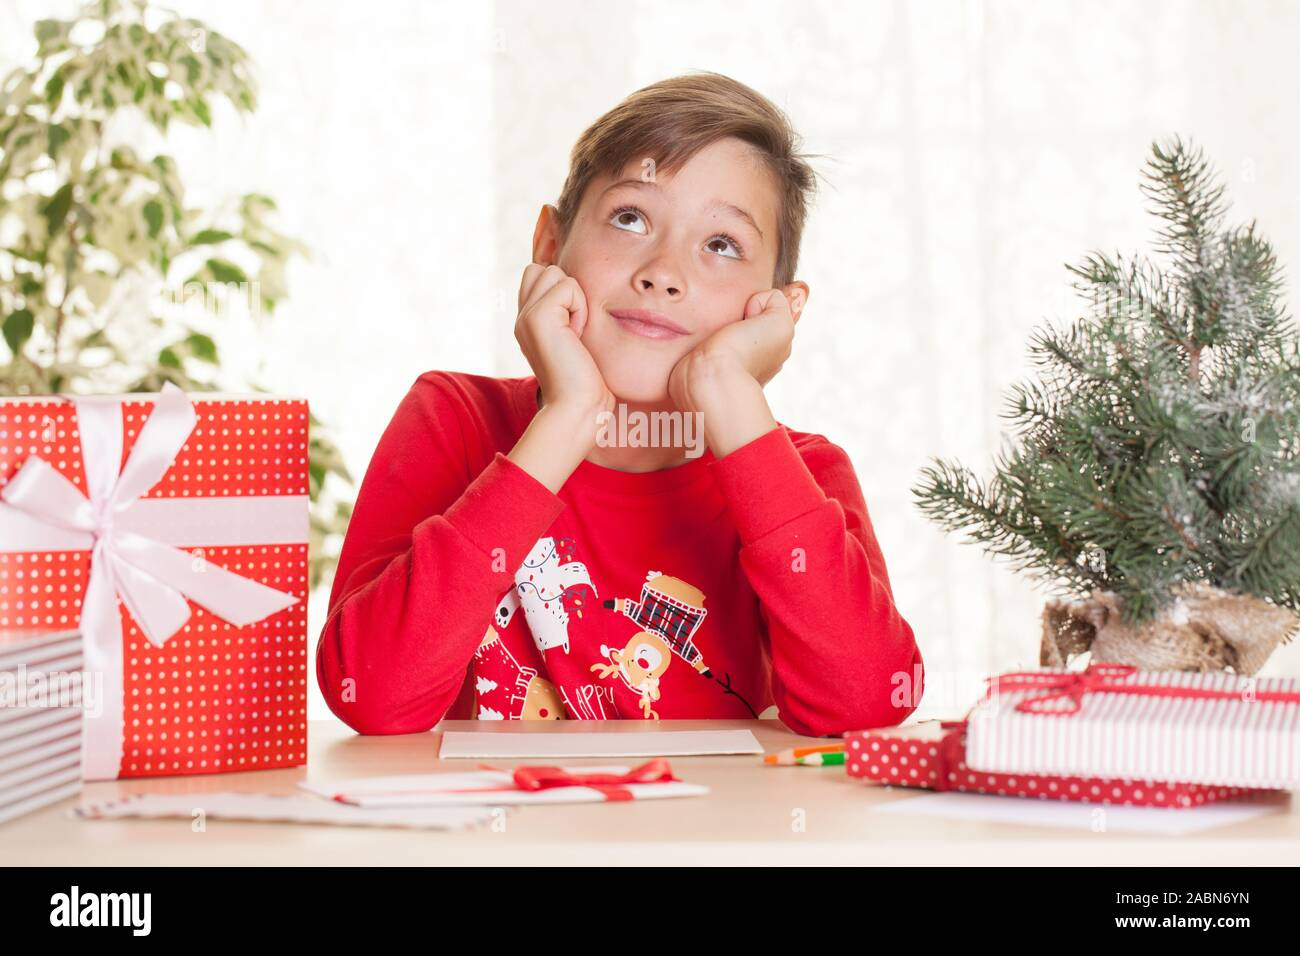 Little Boy Is Going To Write A Letter To Santa Claus About Christmas Gift And Wishes Stock Photo Alamy